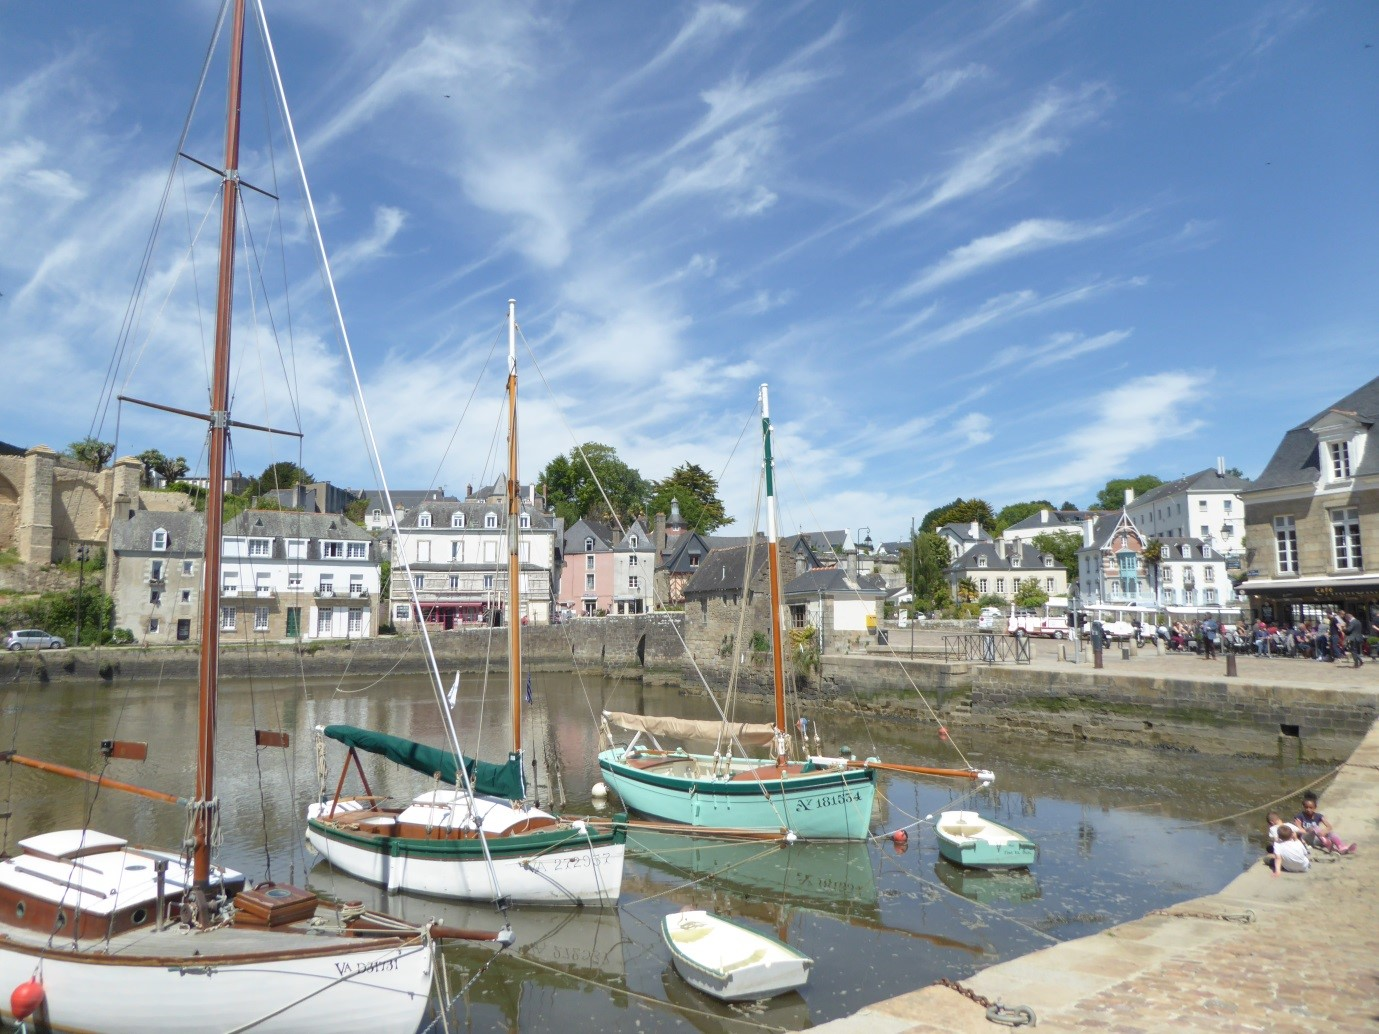 - Auray (pictured in spring time) is one of many local beautiful towns to wander round and explore, with cafes and restaurants clustered around the lovely old port, so many art galleries, and peaceful cobbled streets.